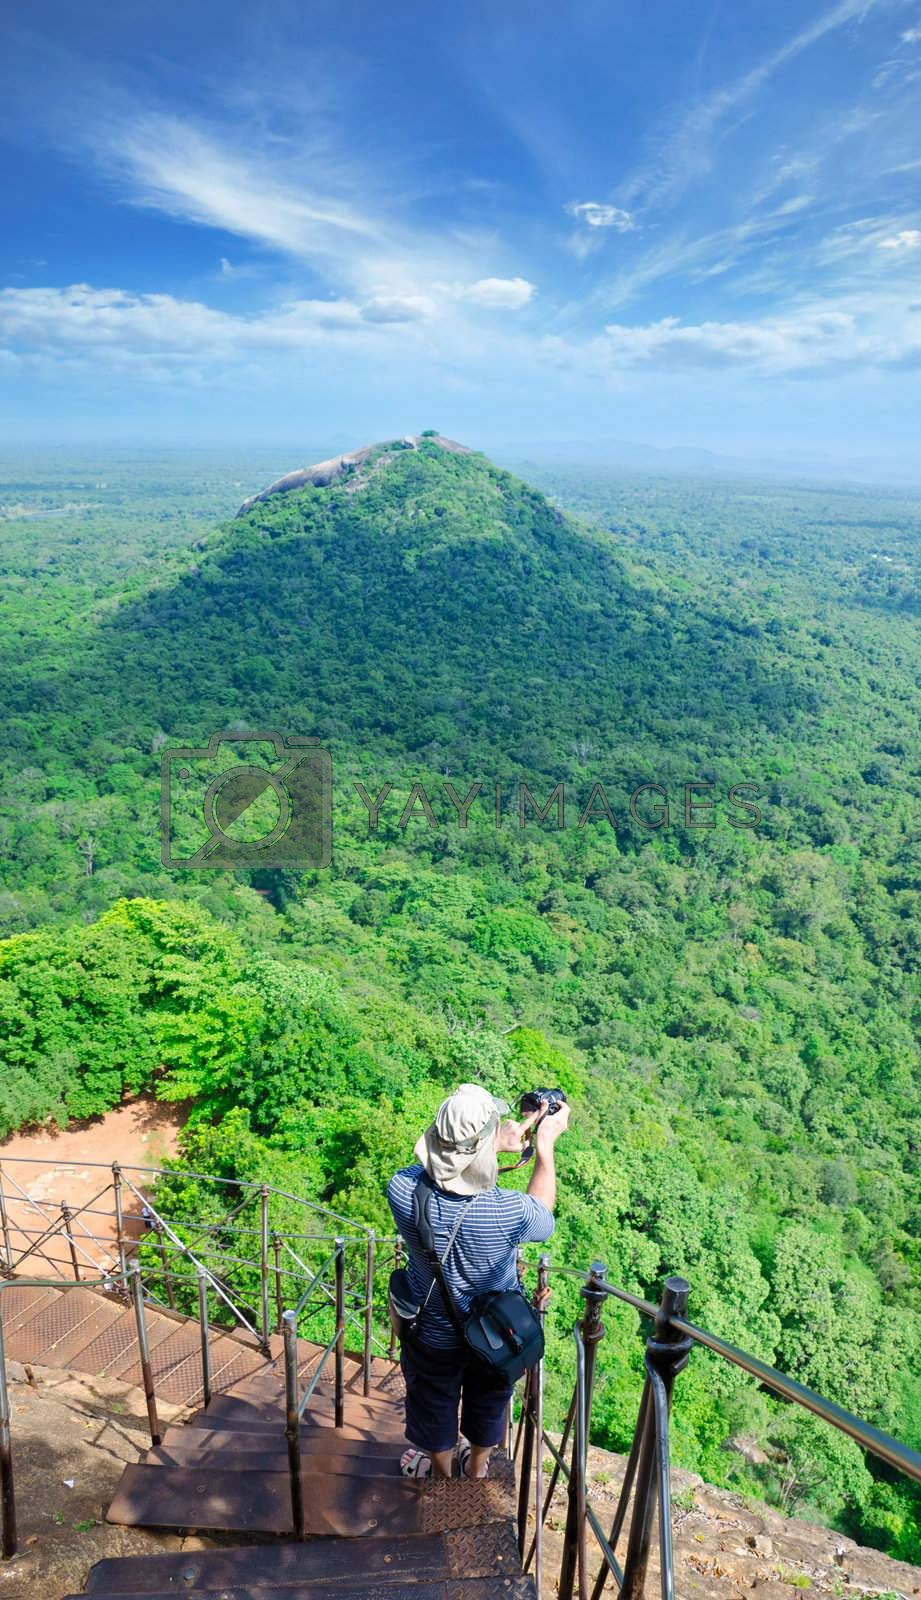 Sigiriya ( Lion's rock ) is a large stone and ancient palace ruin in the central  Sri Lanka